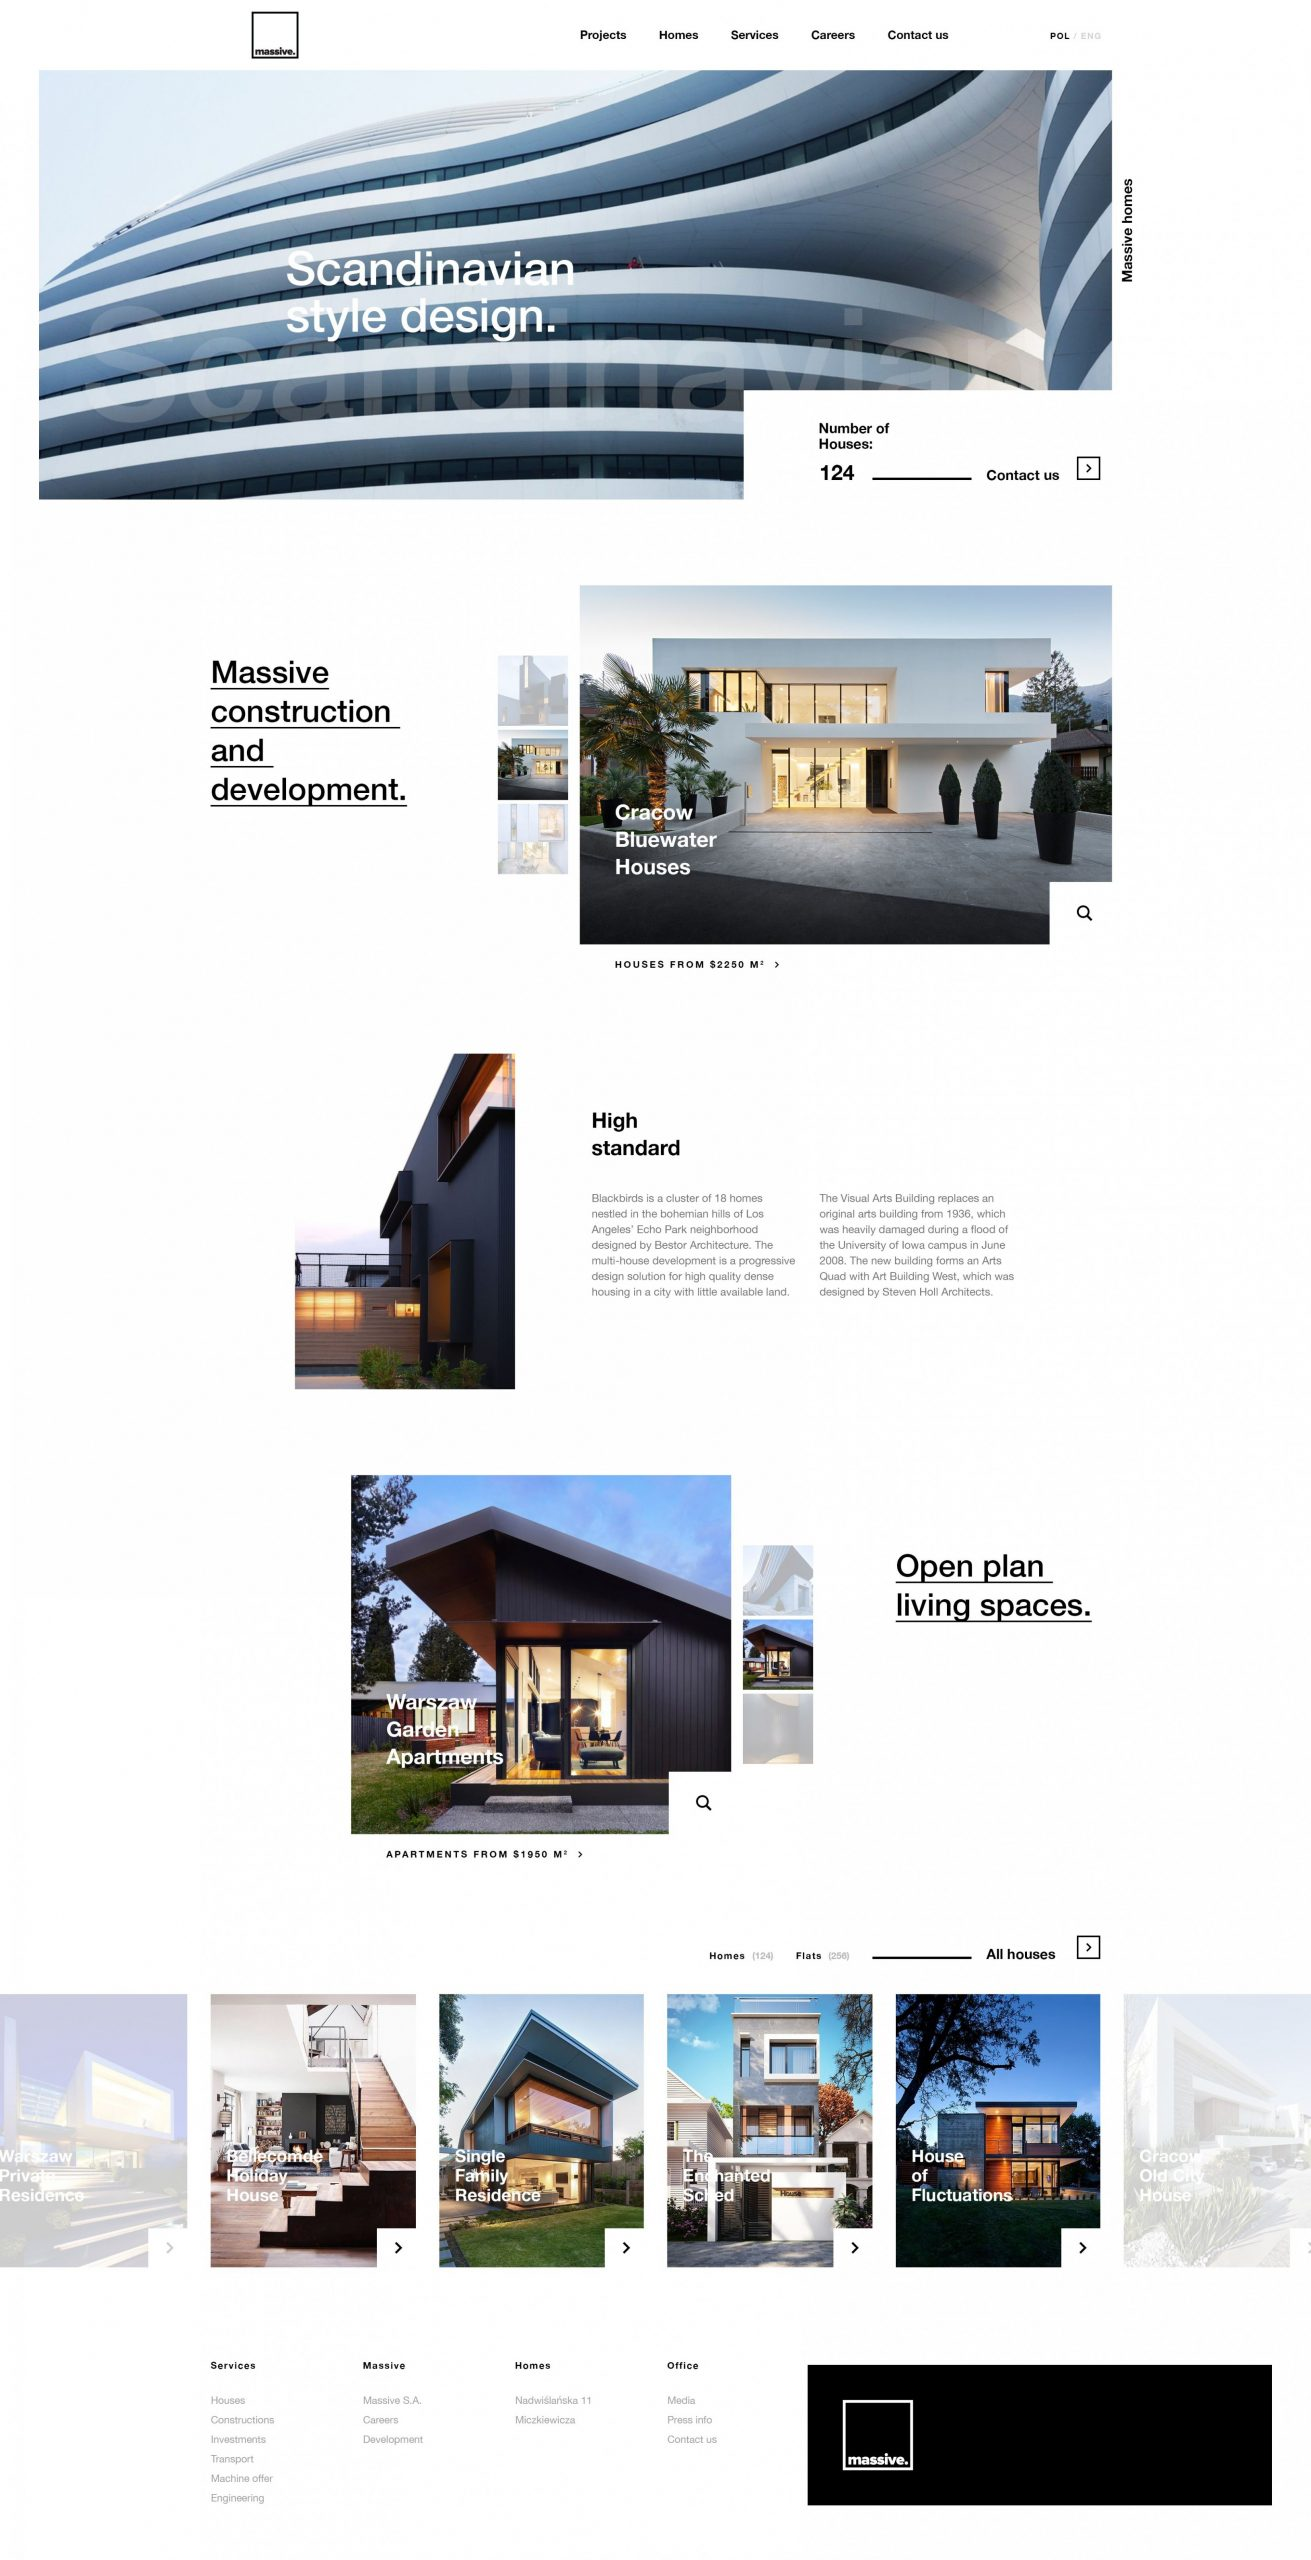 Apartments  Real estate website design, Web layout design  - Apartment Website Design Inspiration